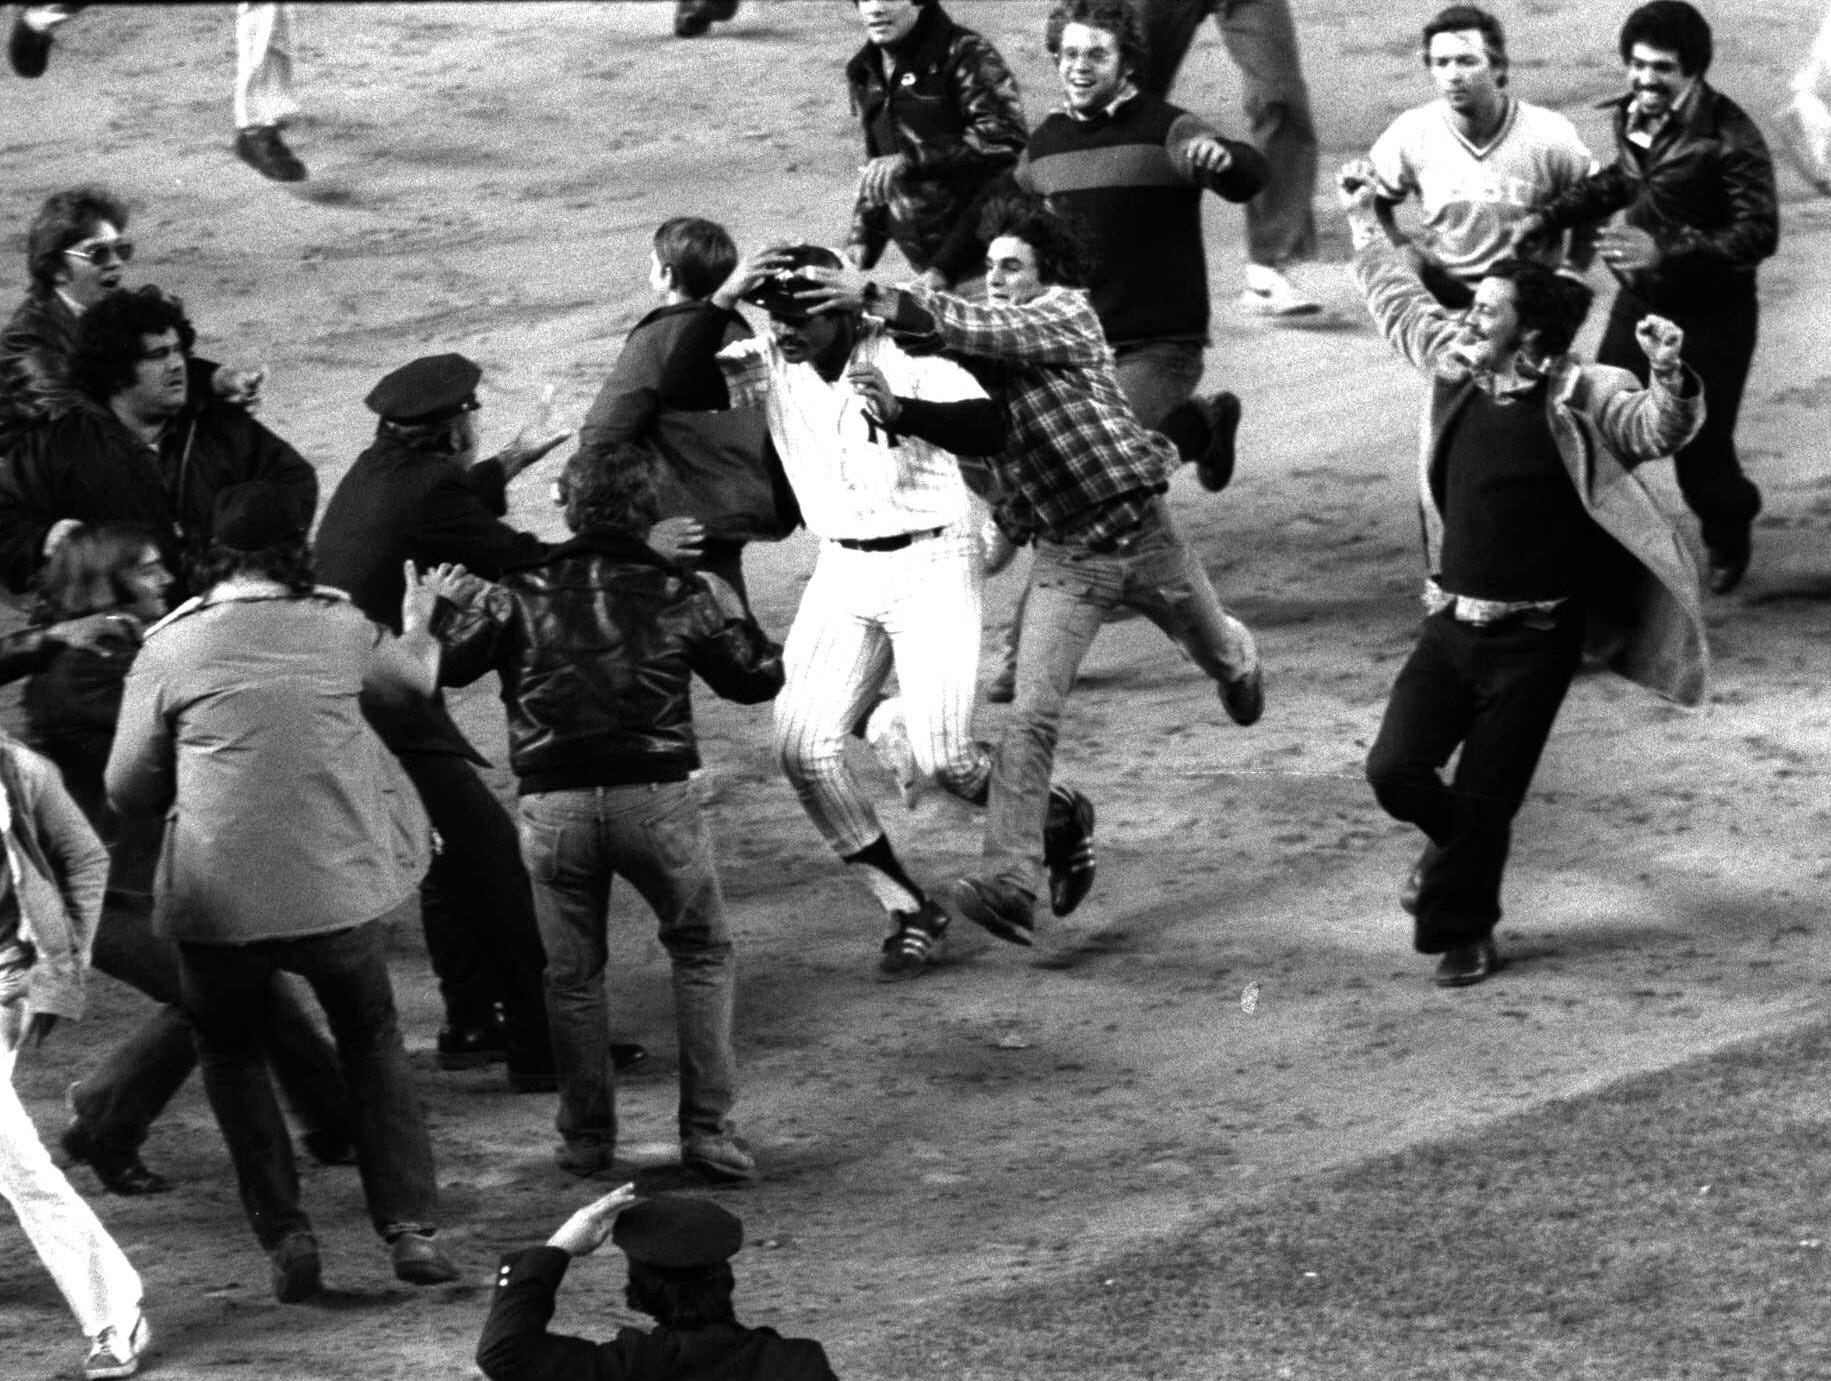 1976 ALCS Game 5: Chris Chambliss hit a walk-off solo homer against the Royals to put the Yankees in the World Series, and fans mobbed the field before he could even circle the bases.